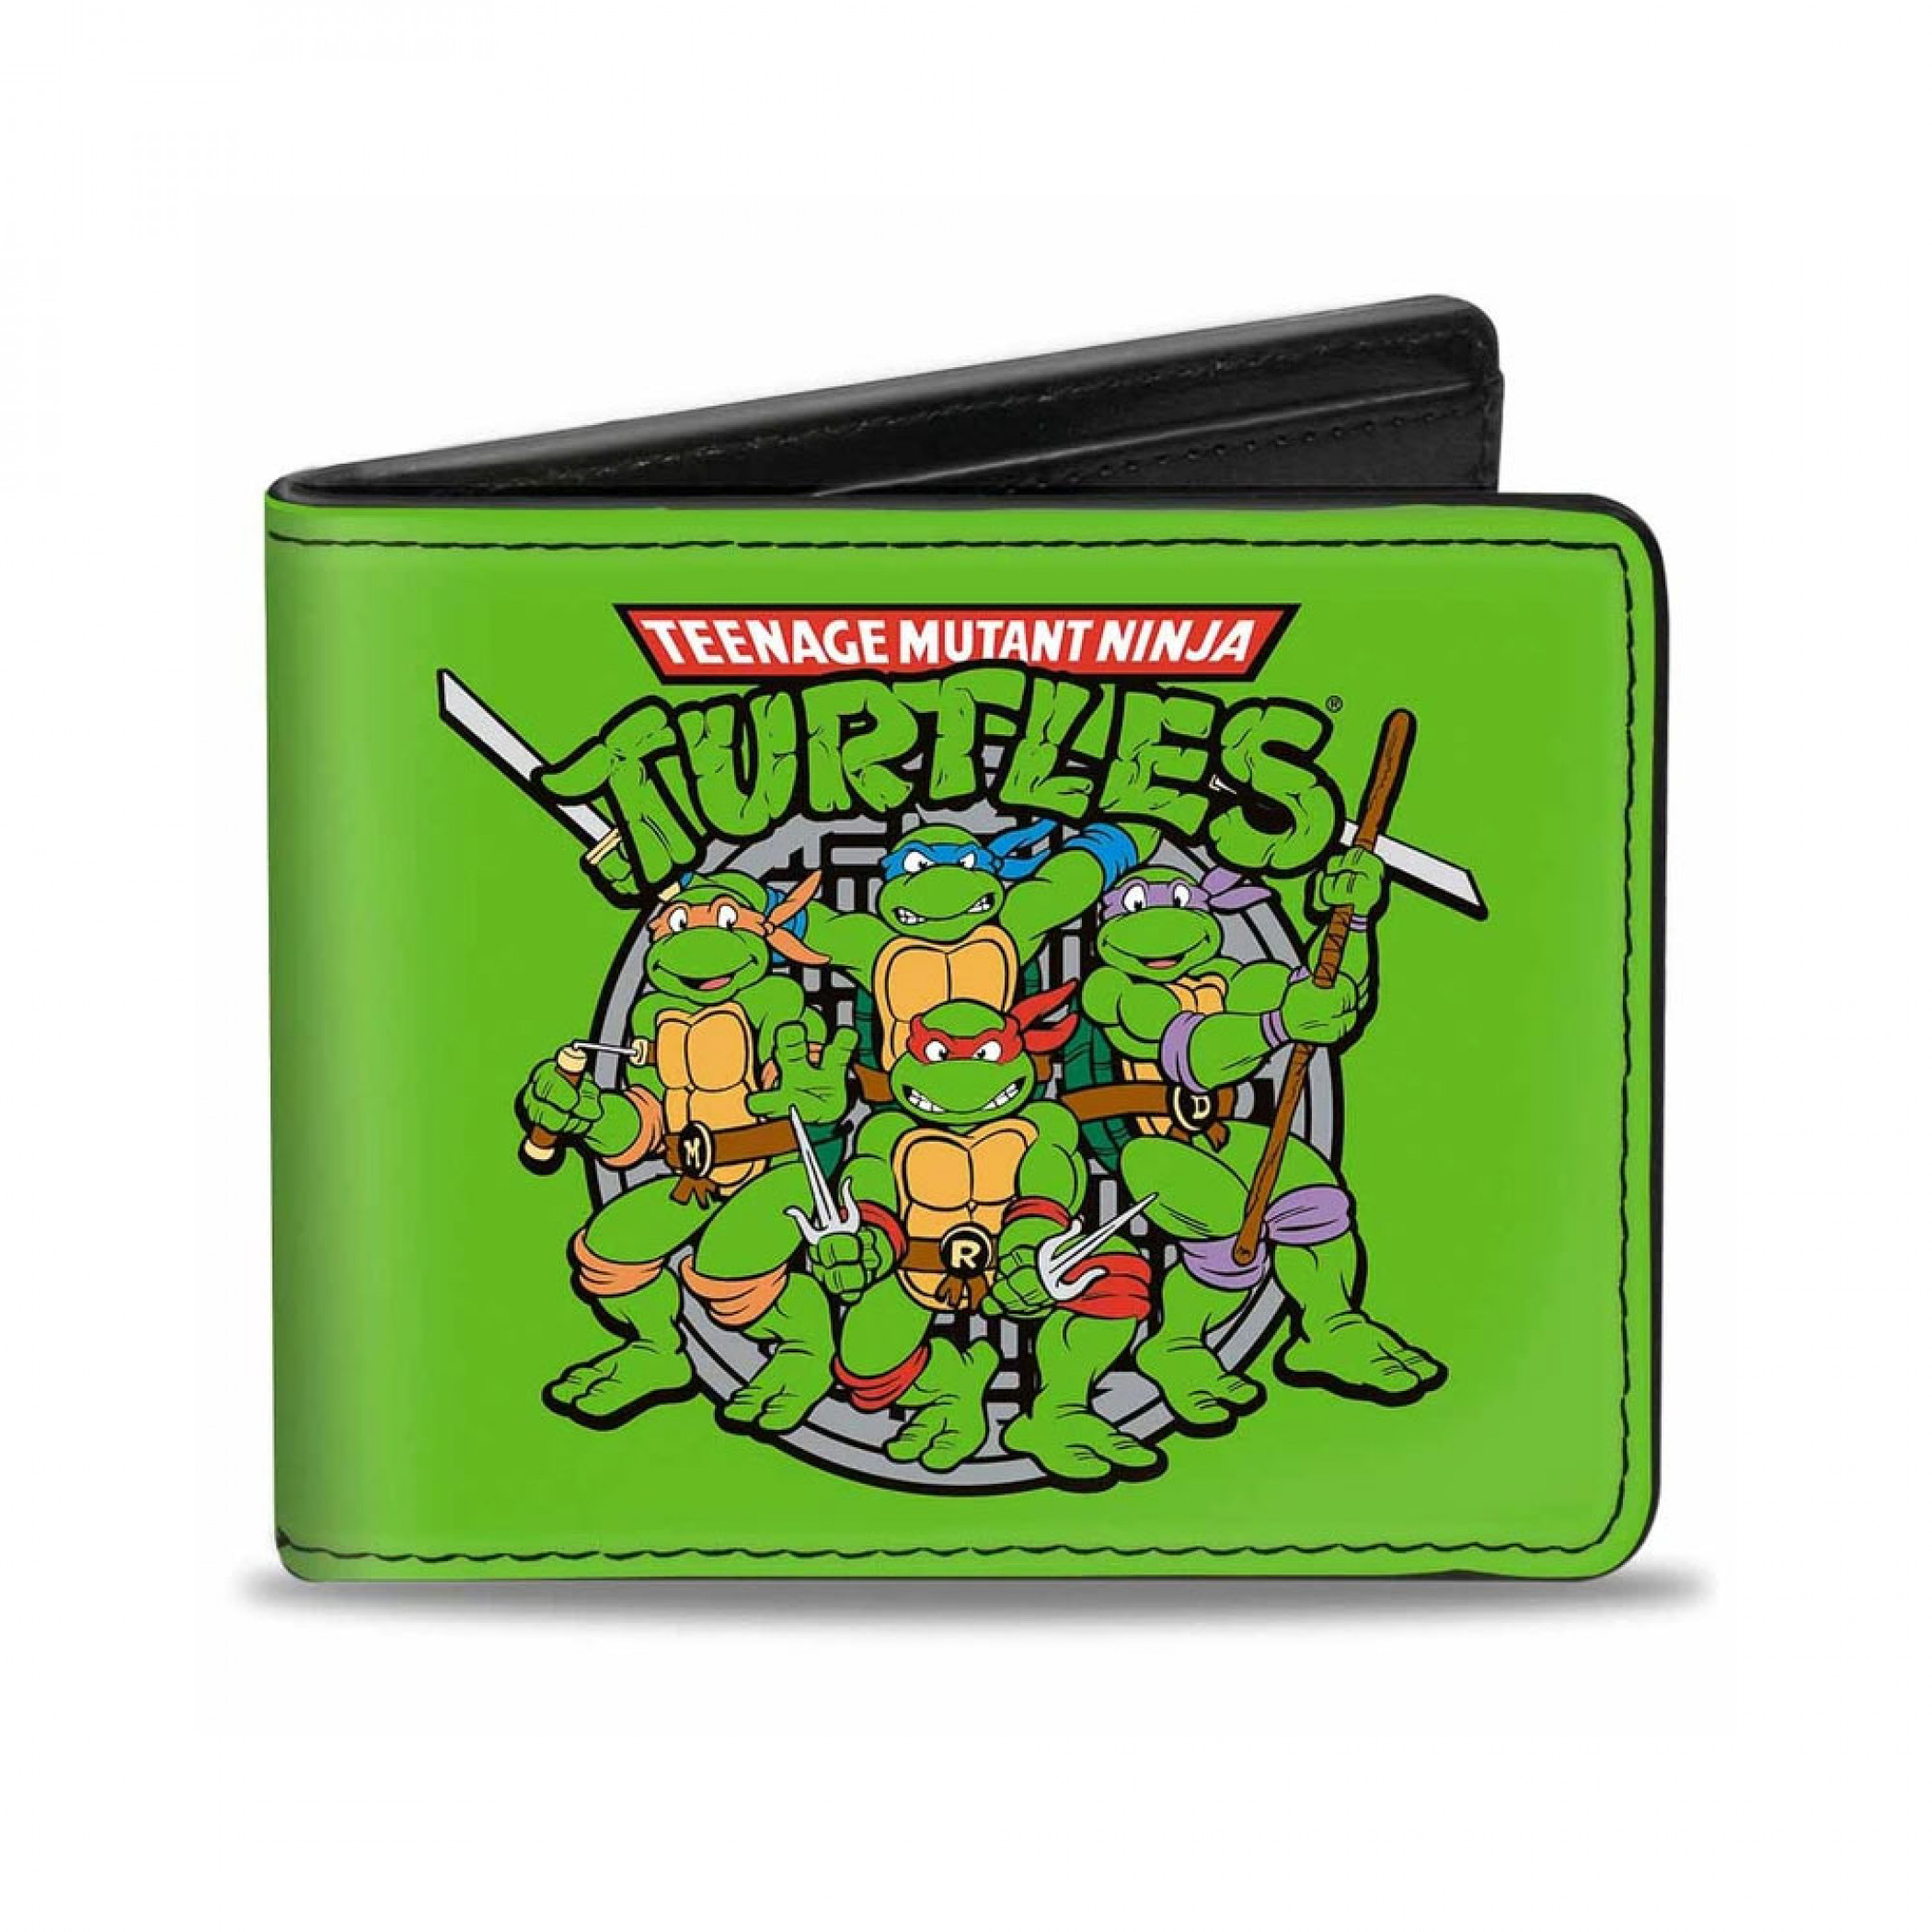 Teenage Mutant Ninja Turtles Wallet